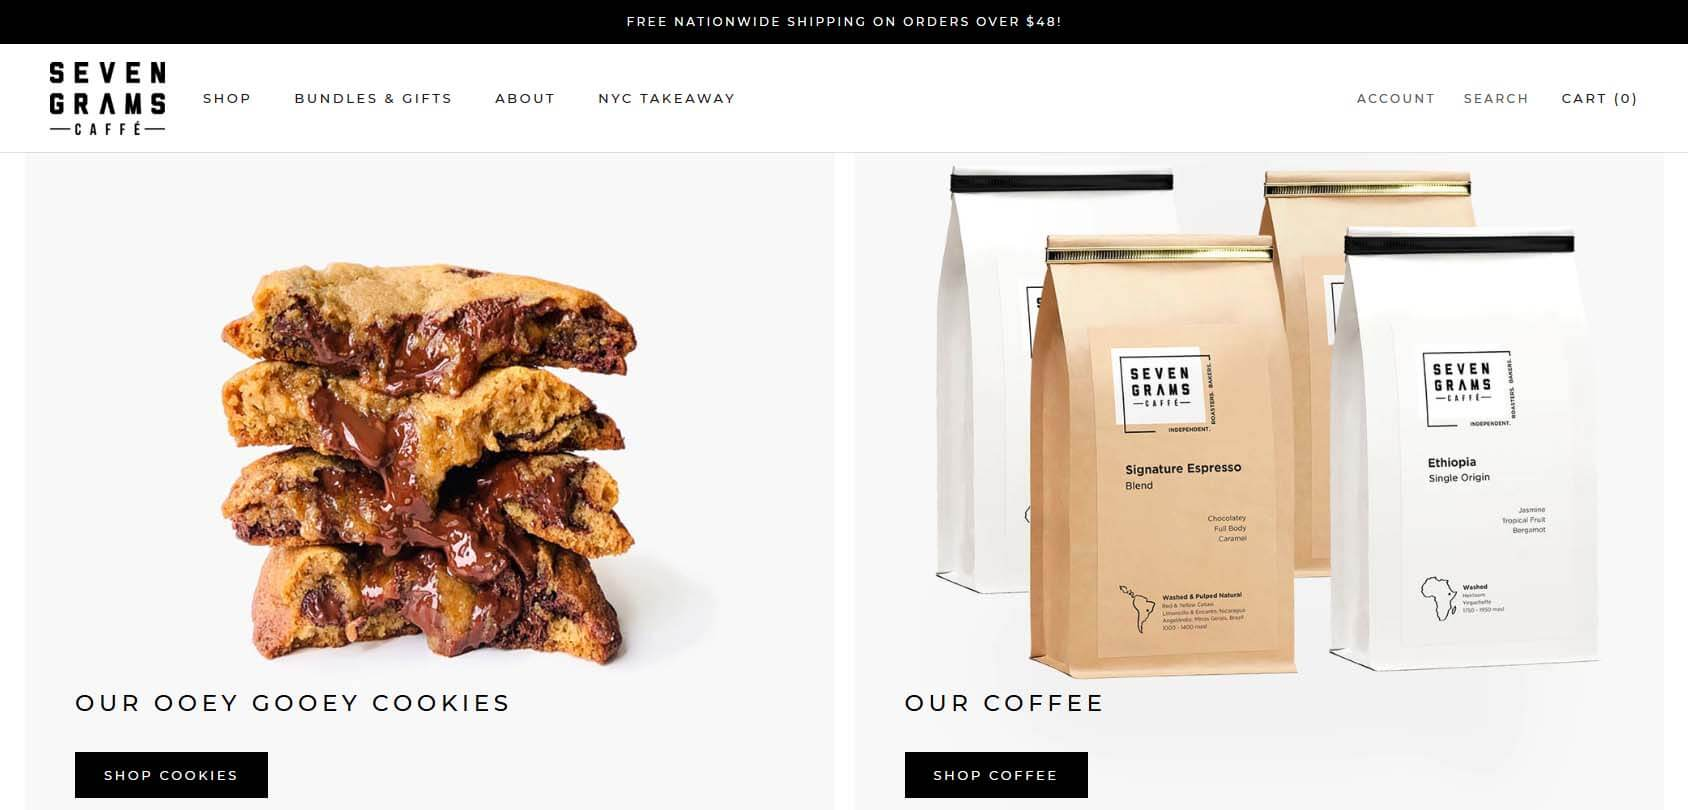 Seven Grams Caffe Homepage